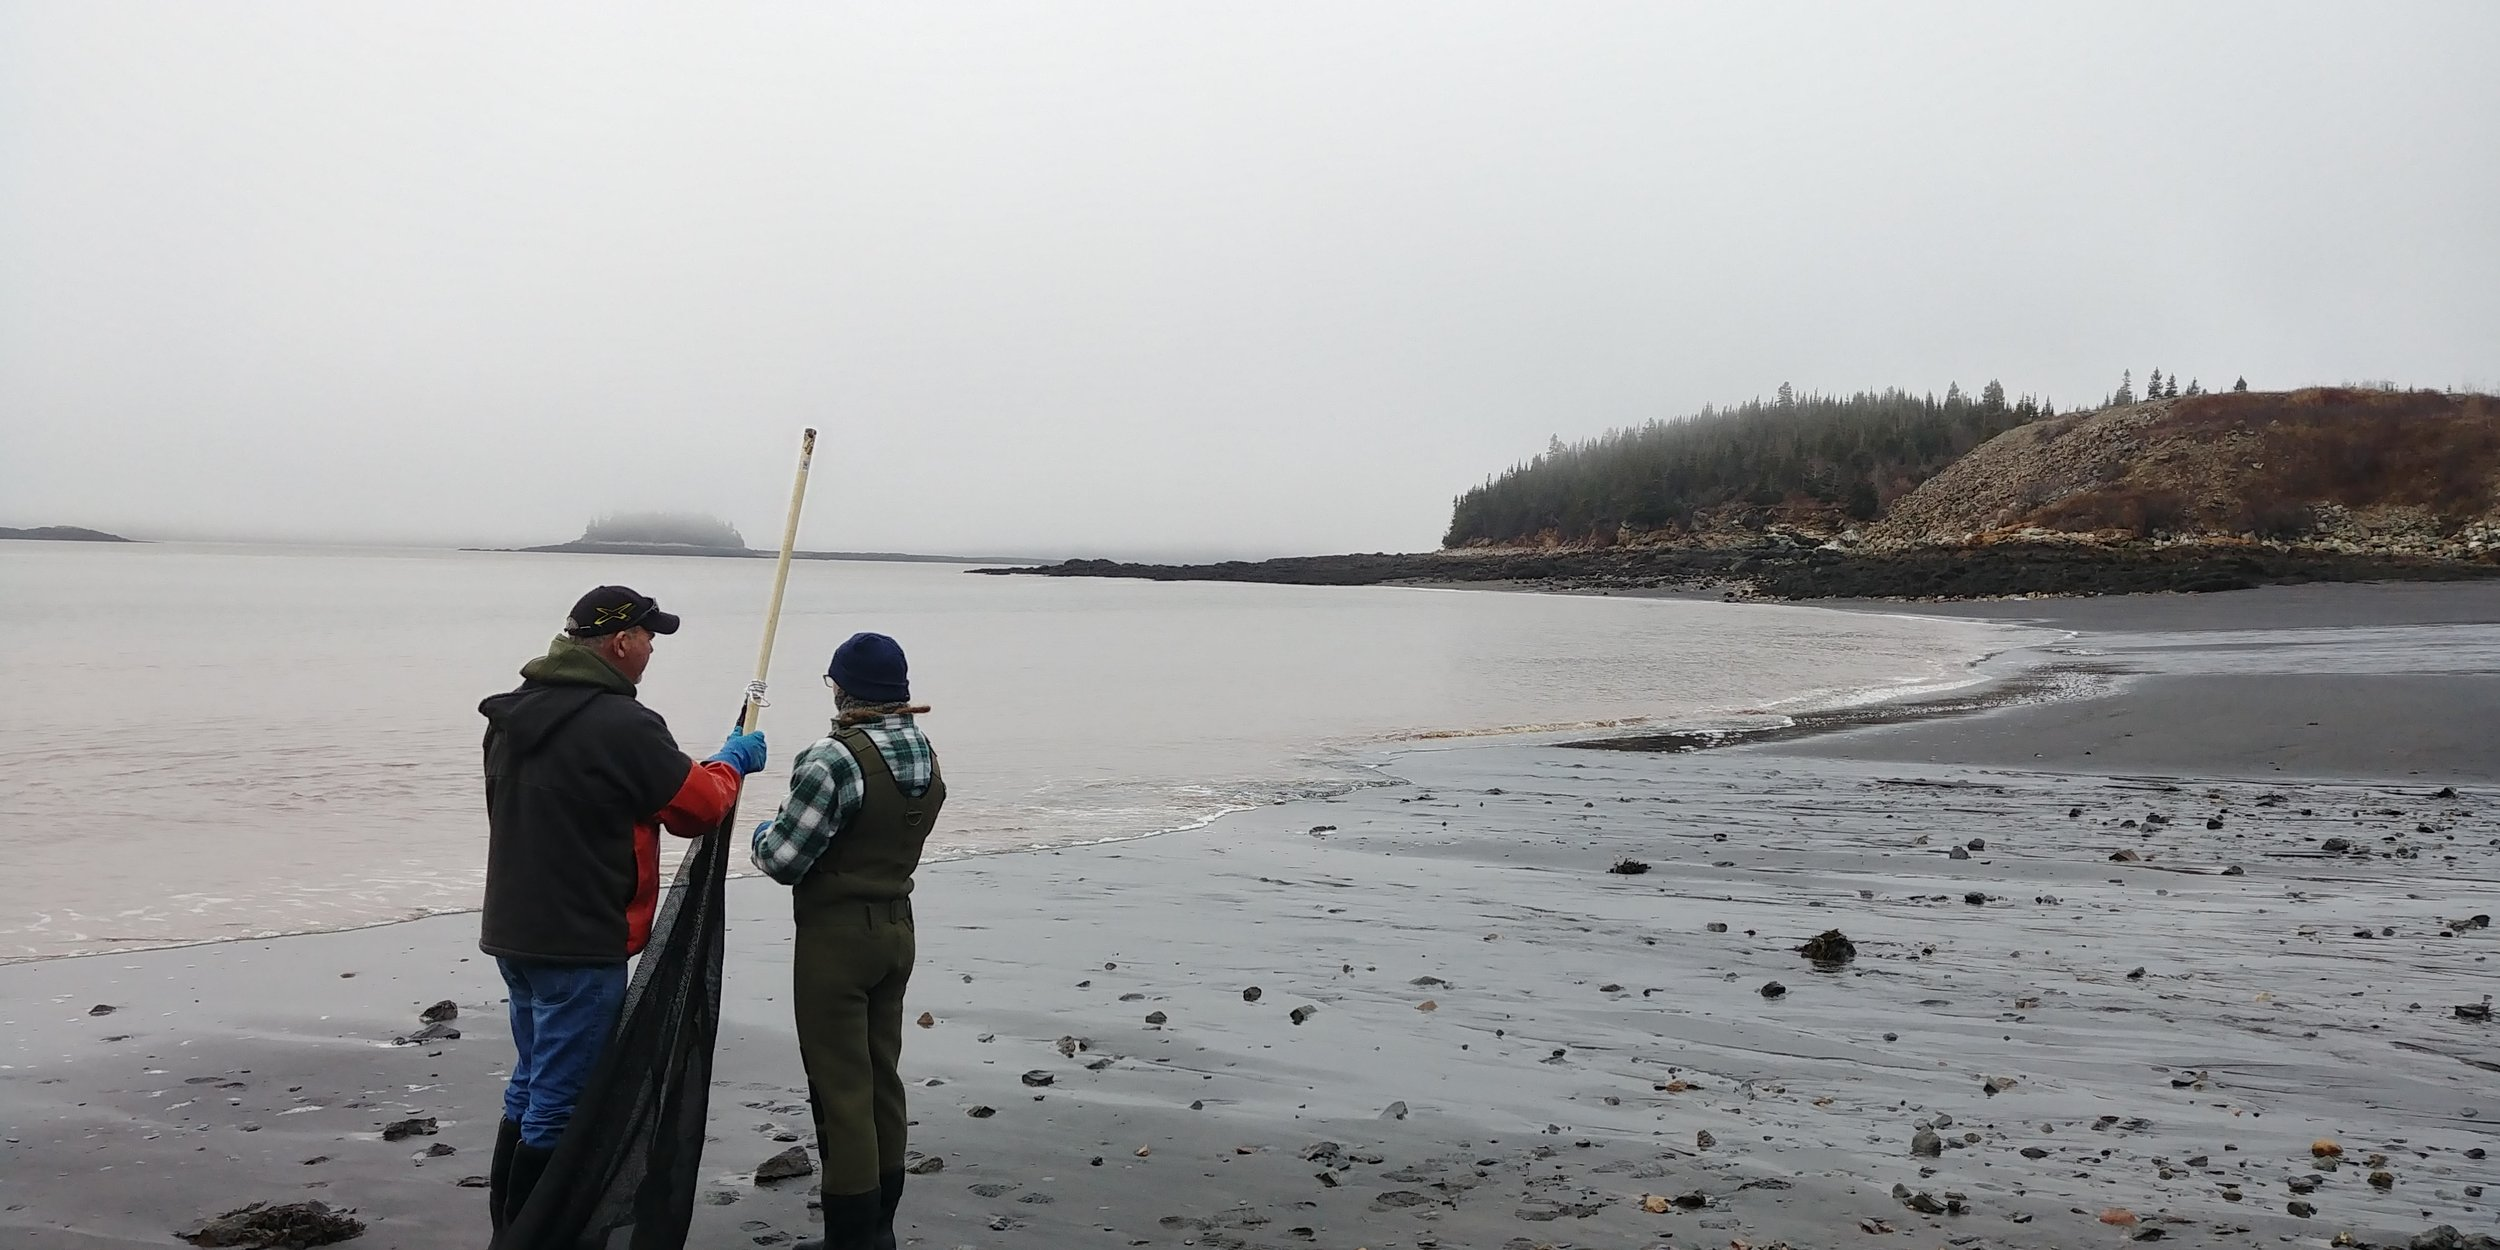 Working in the Musquash Estuary Marine Protected Area